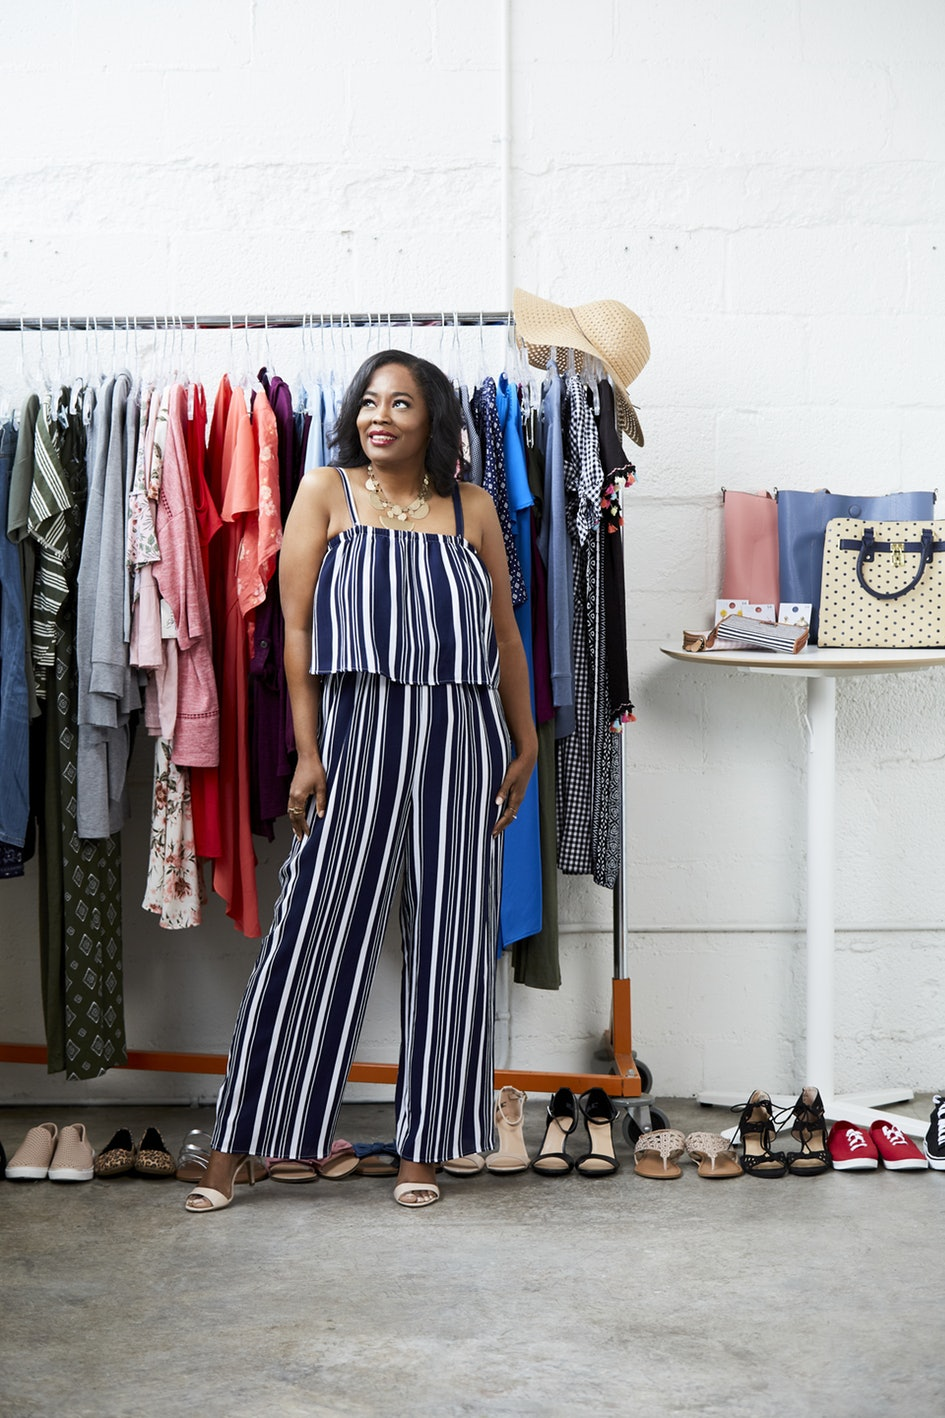 My Interview/Fashion Shoot With Bustle/The Style Squad Presented By Walmart